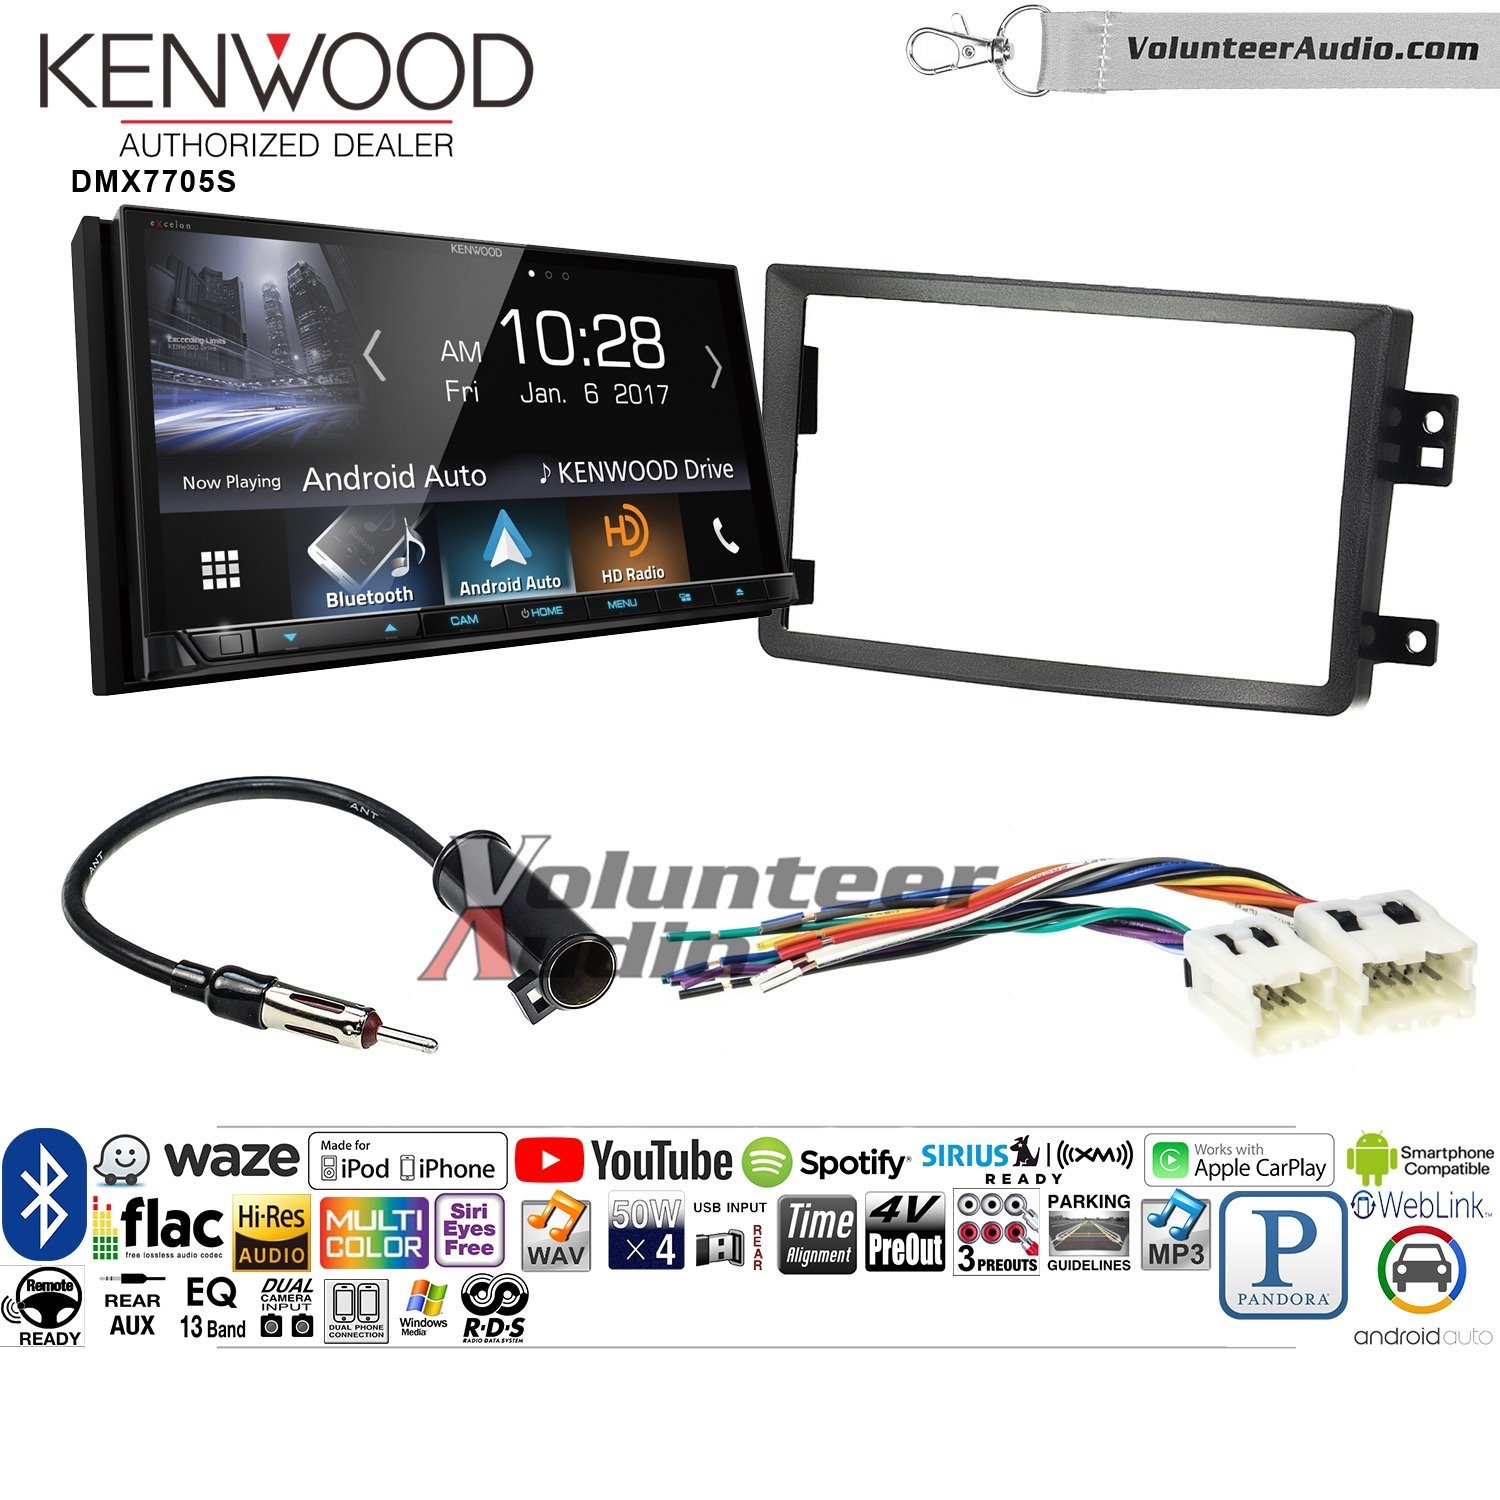 Volunteer Audio Kenwood DMX7705S Double Din Radio Install Kit with Apple CarPlay Android Auto Bluetooth Fits 2006-2009 Nissan 350Z